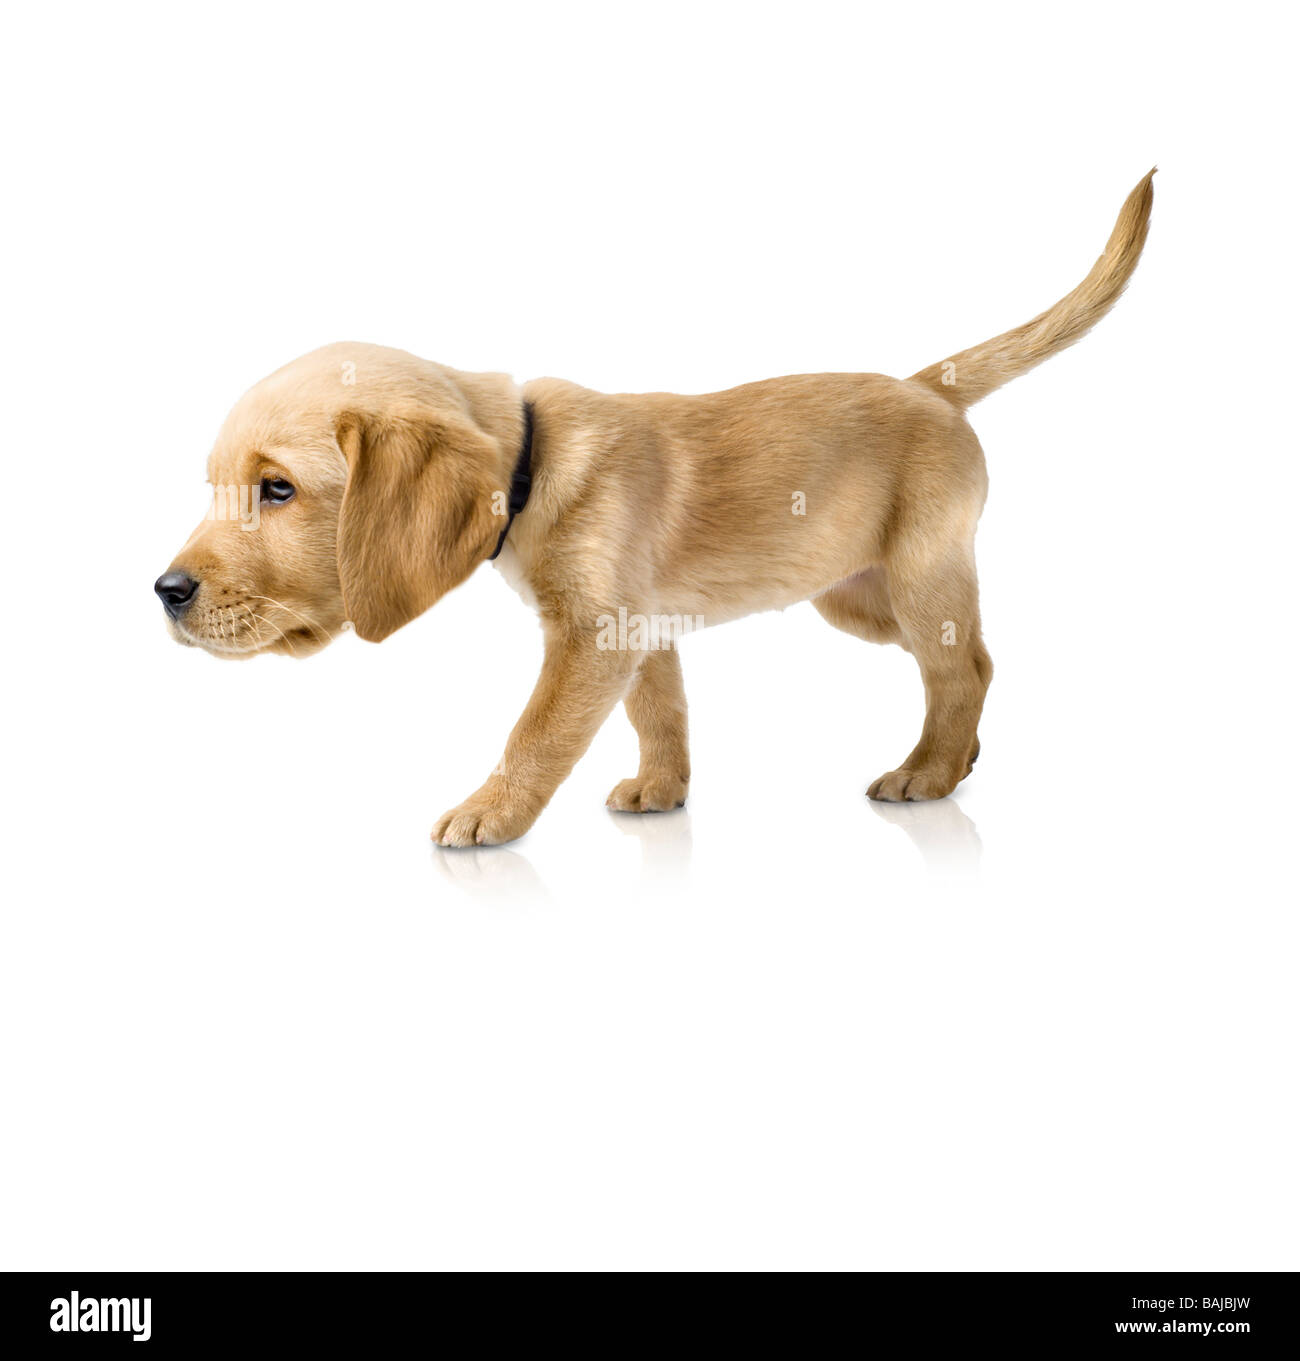 Labrador Cross Golden Retriever Puppy With An Exagerated Big Funny